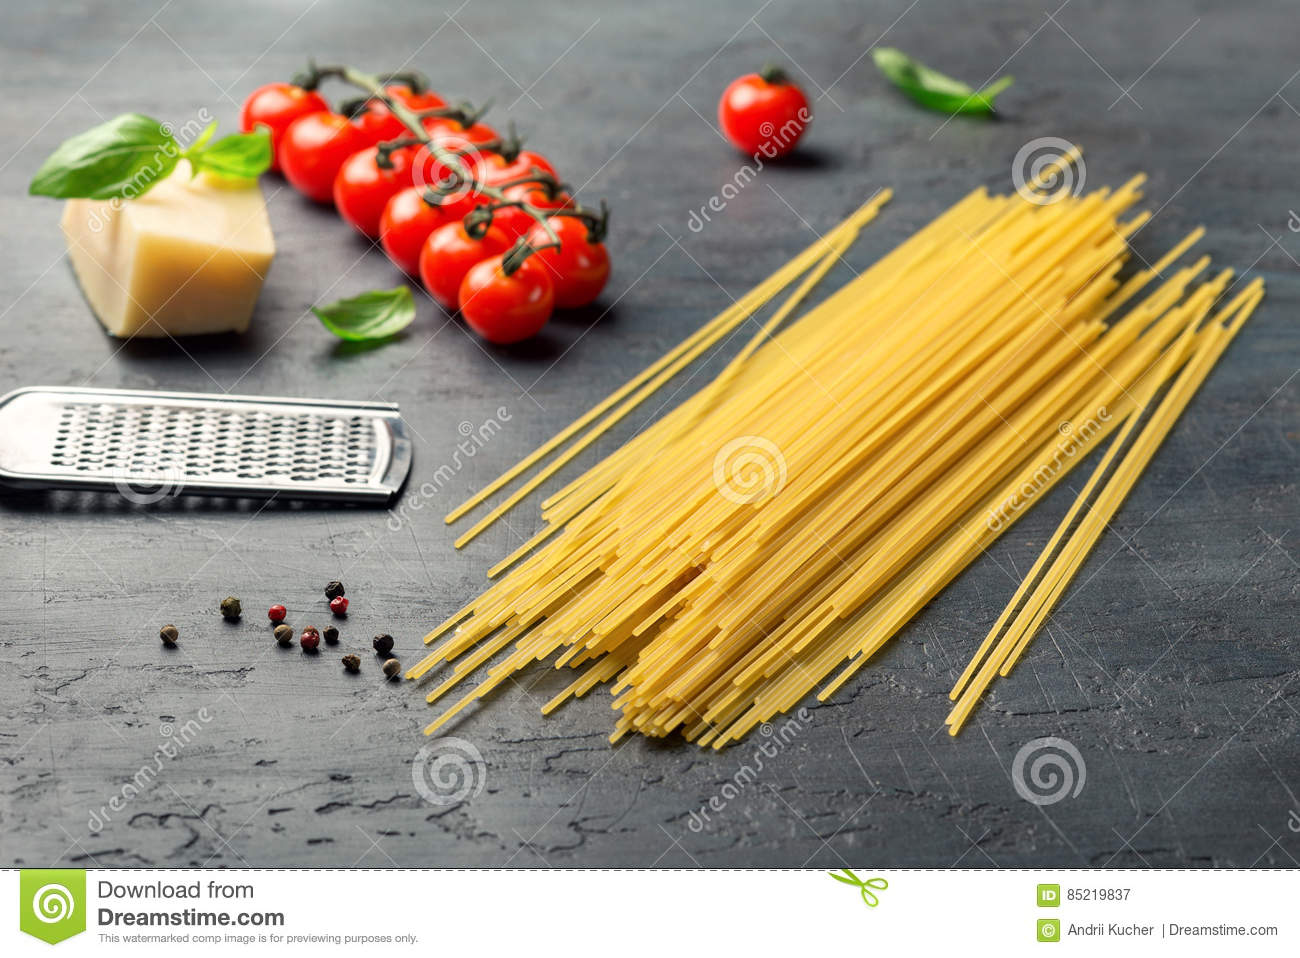 Raw Italian spaghetti with ingredients for cooking classic Italian pasta